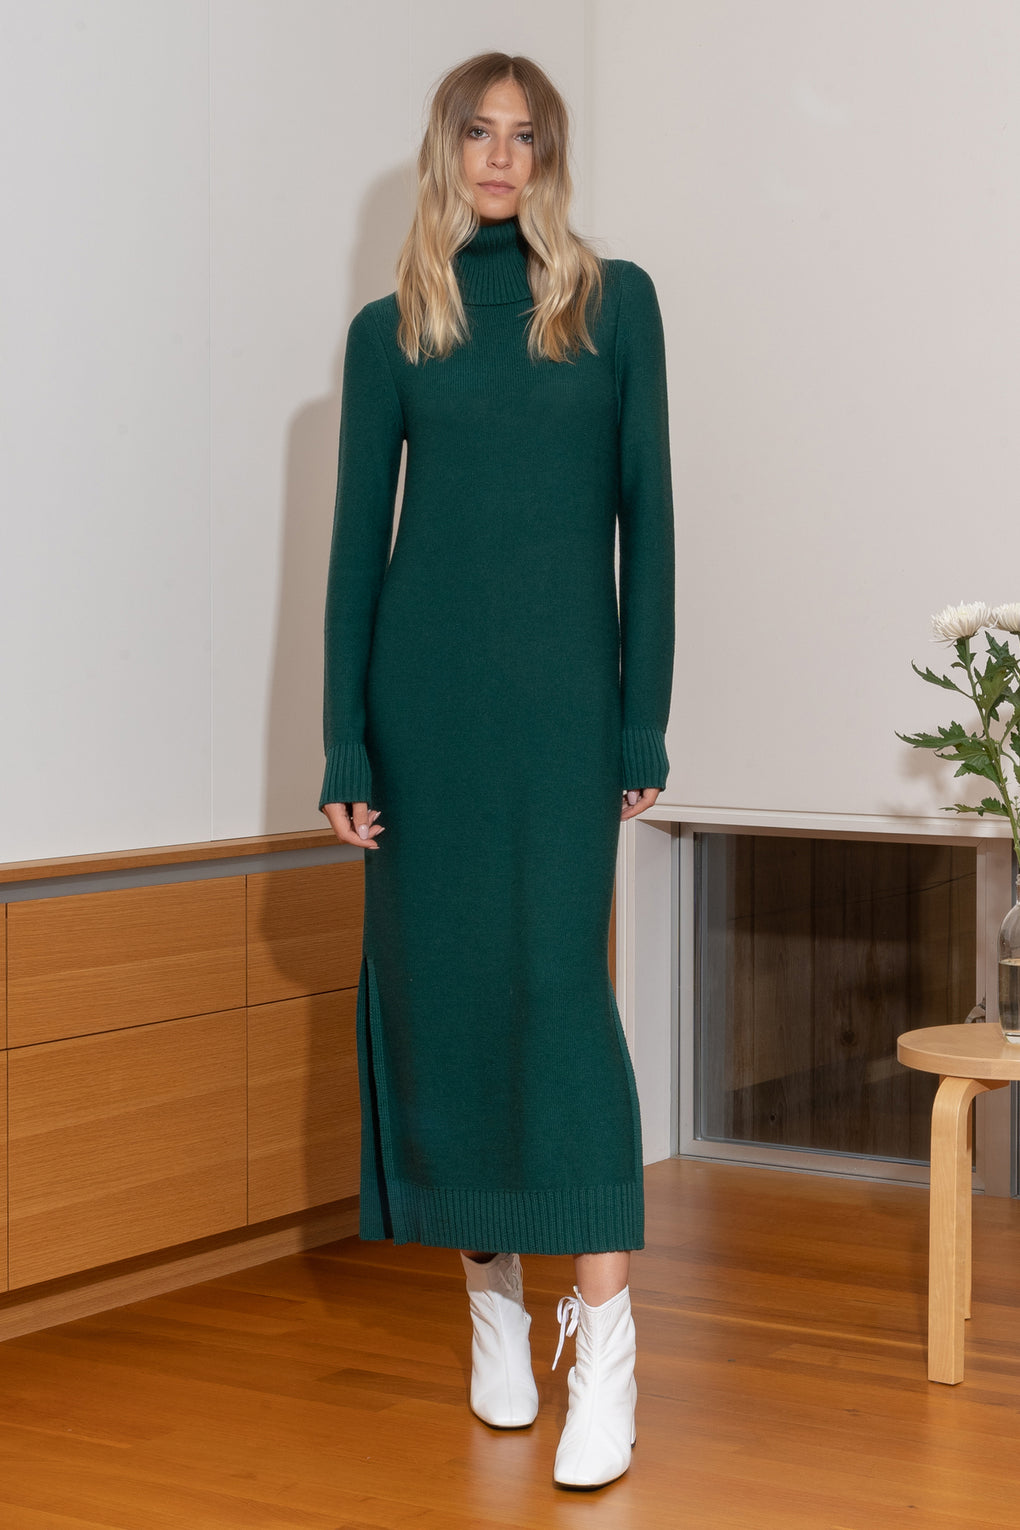 Kai Dress in Green - SHOPNECESSARY6.0